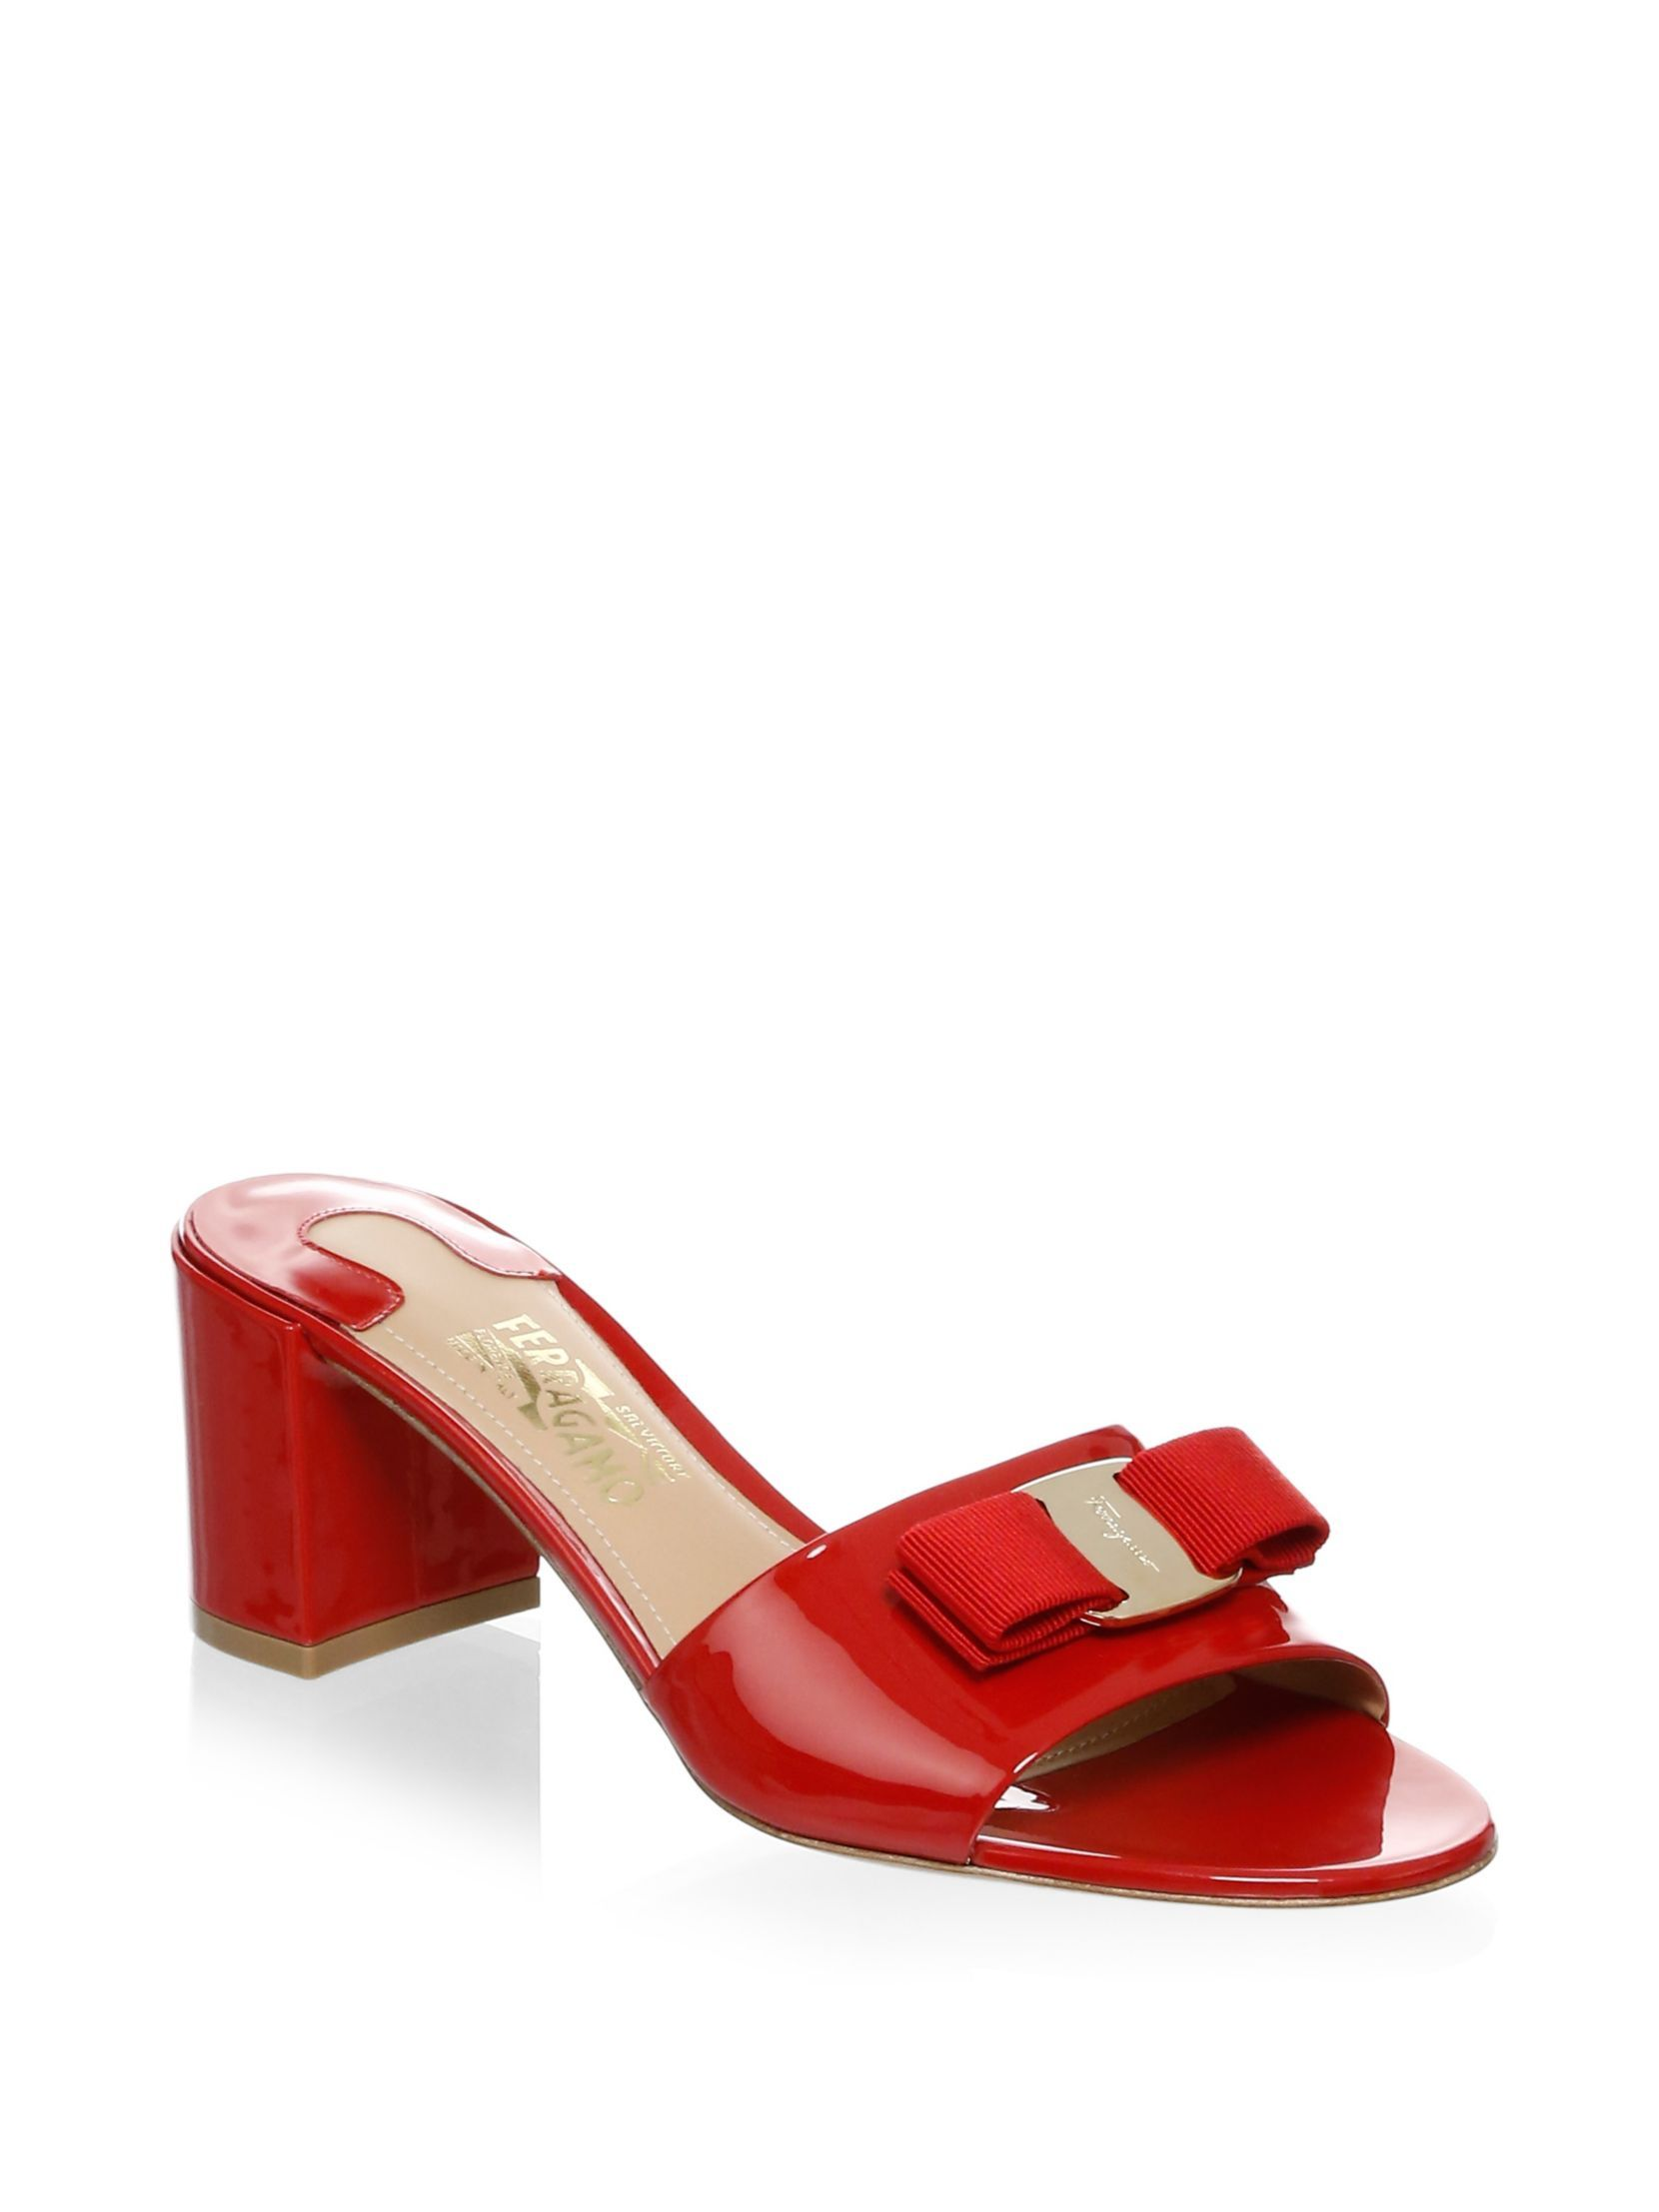 Salvatore Ferragamo Patent Leather Slip-On Sandals Ox42I